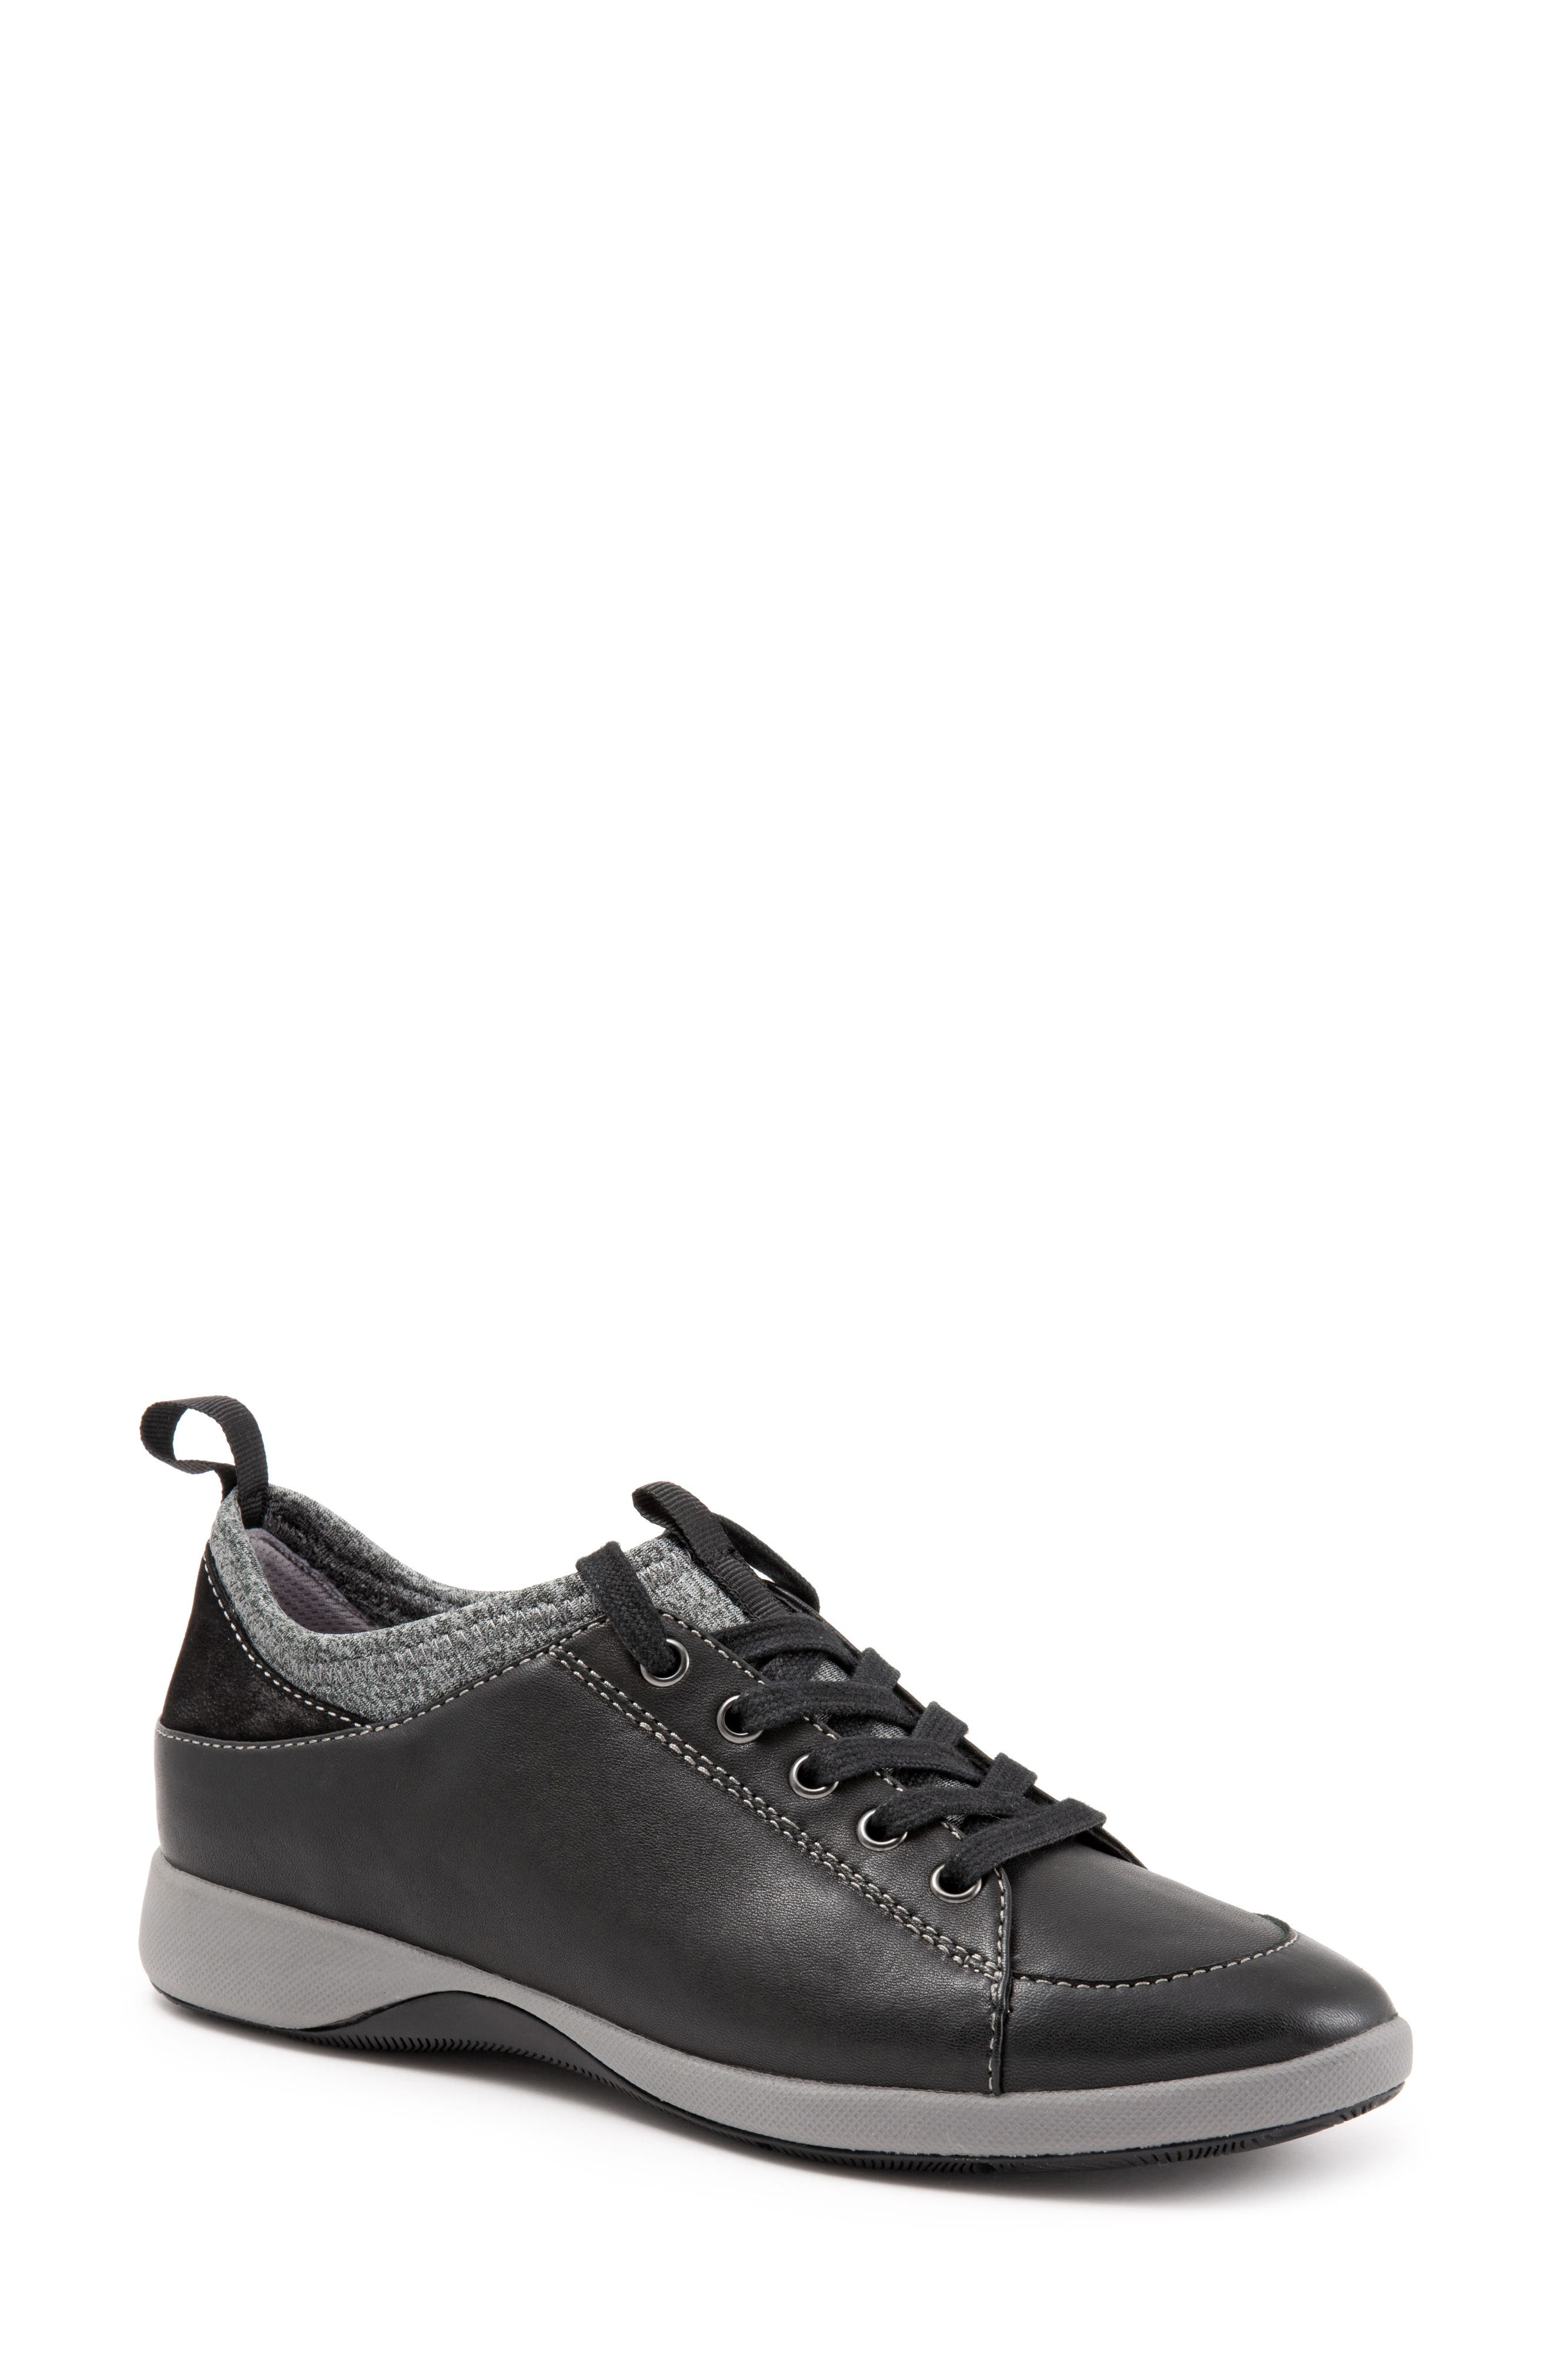 SAVA Haven Sneaker,                             Alternate thumbnail 8, color,                             BLACK/ GREY LEATHER